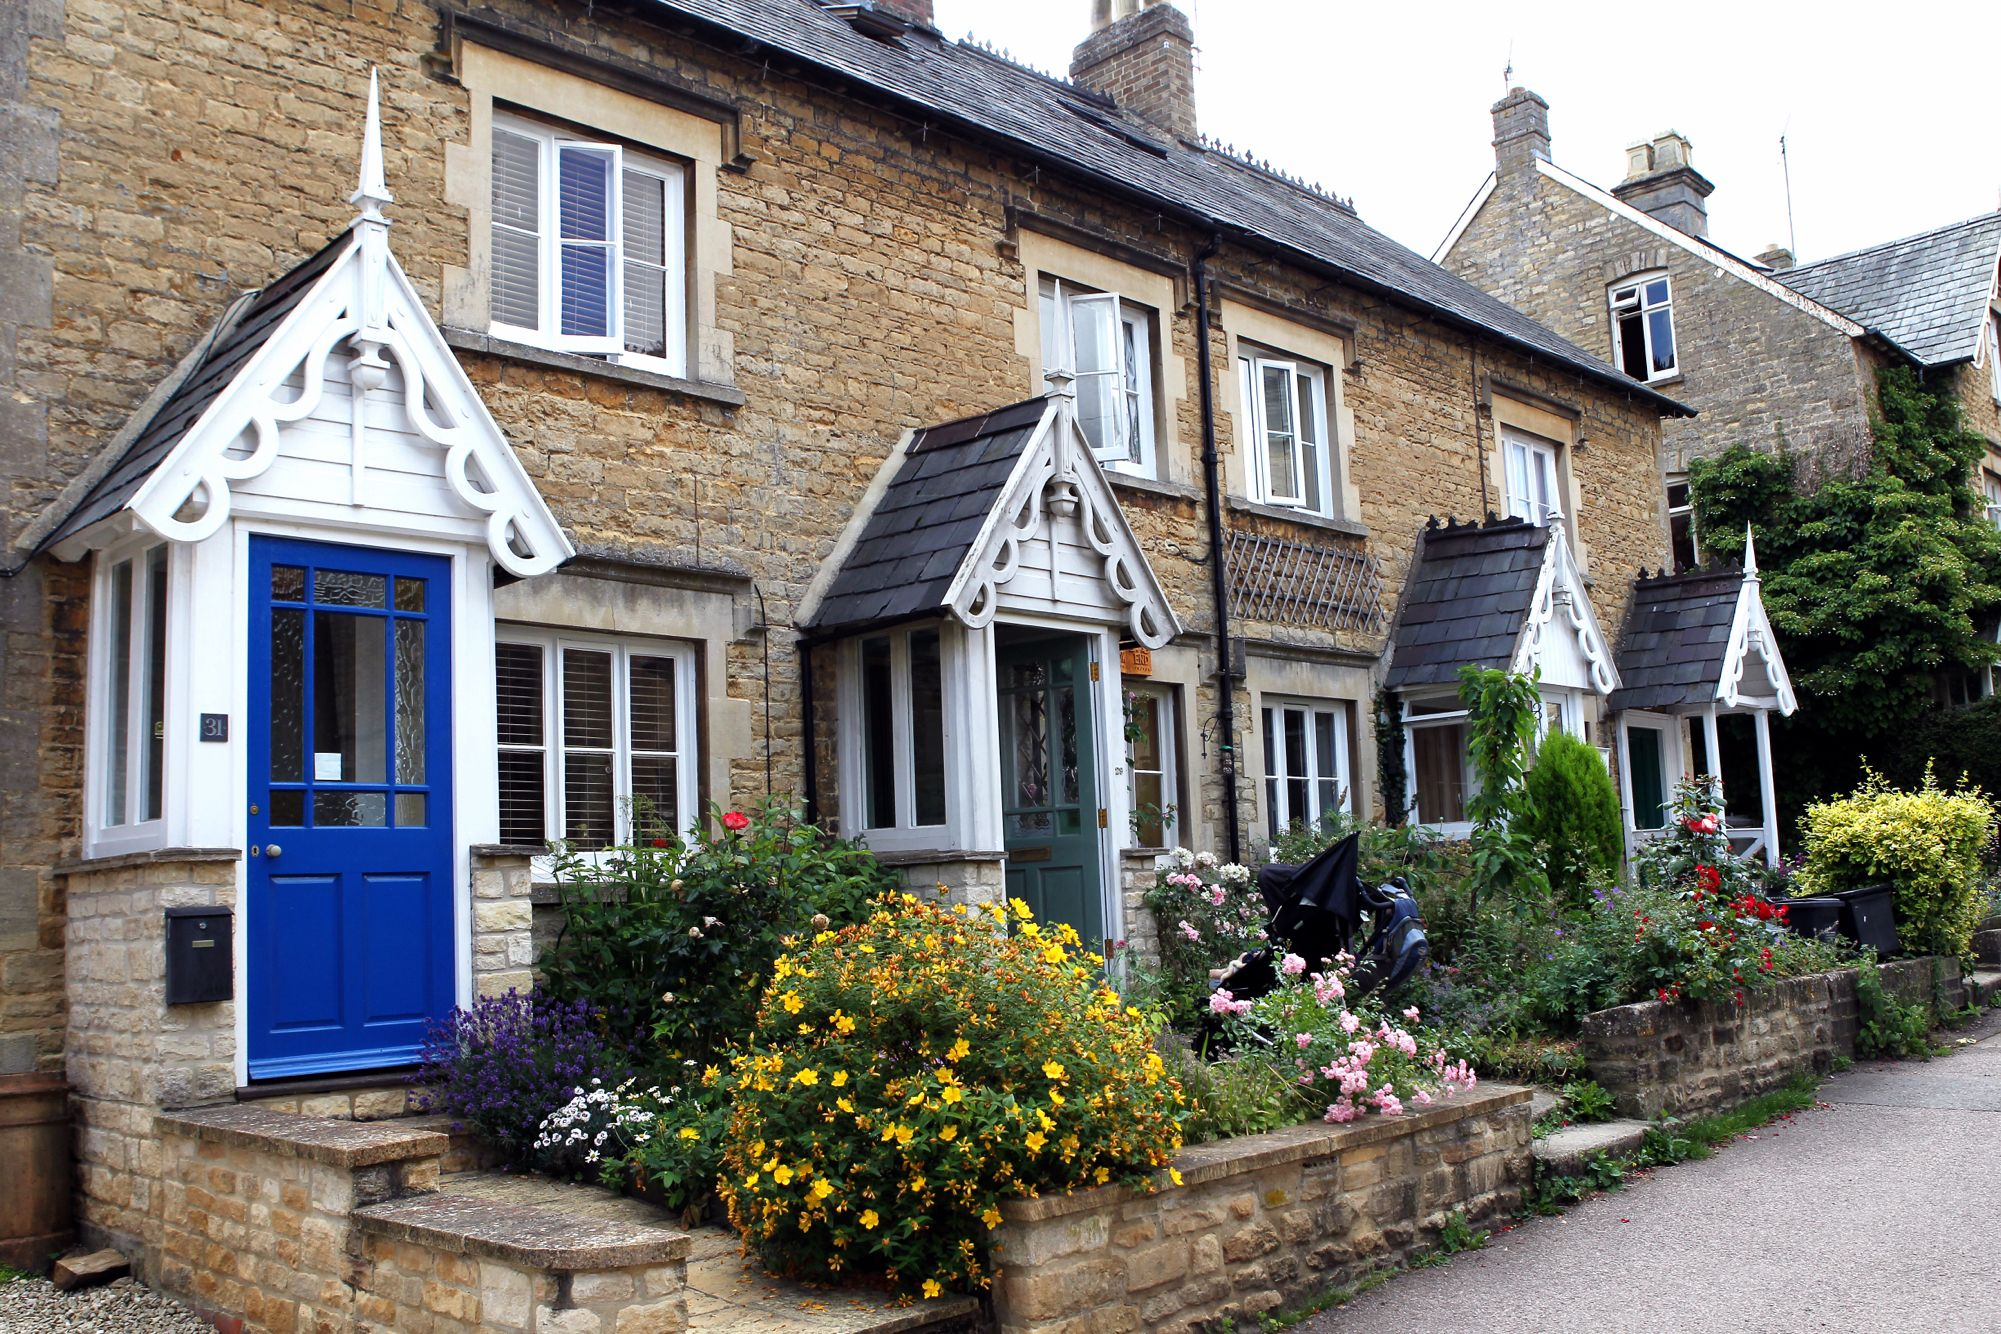 distons lane, chipping norton | england my england | pinterest